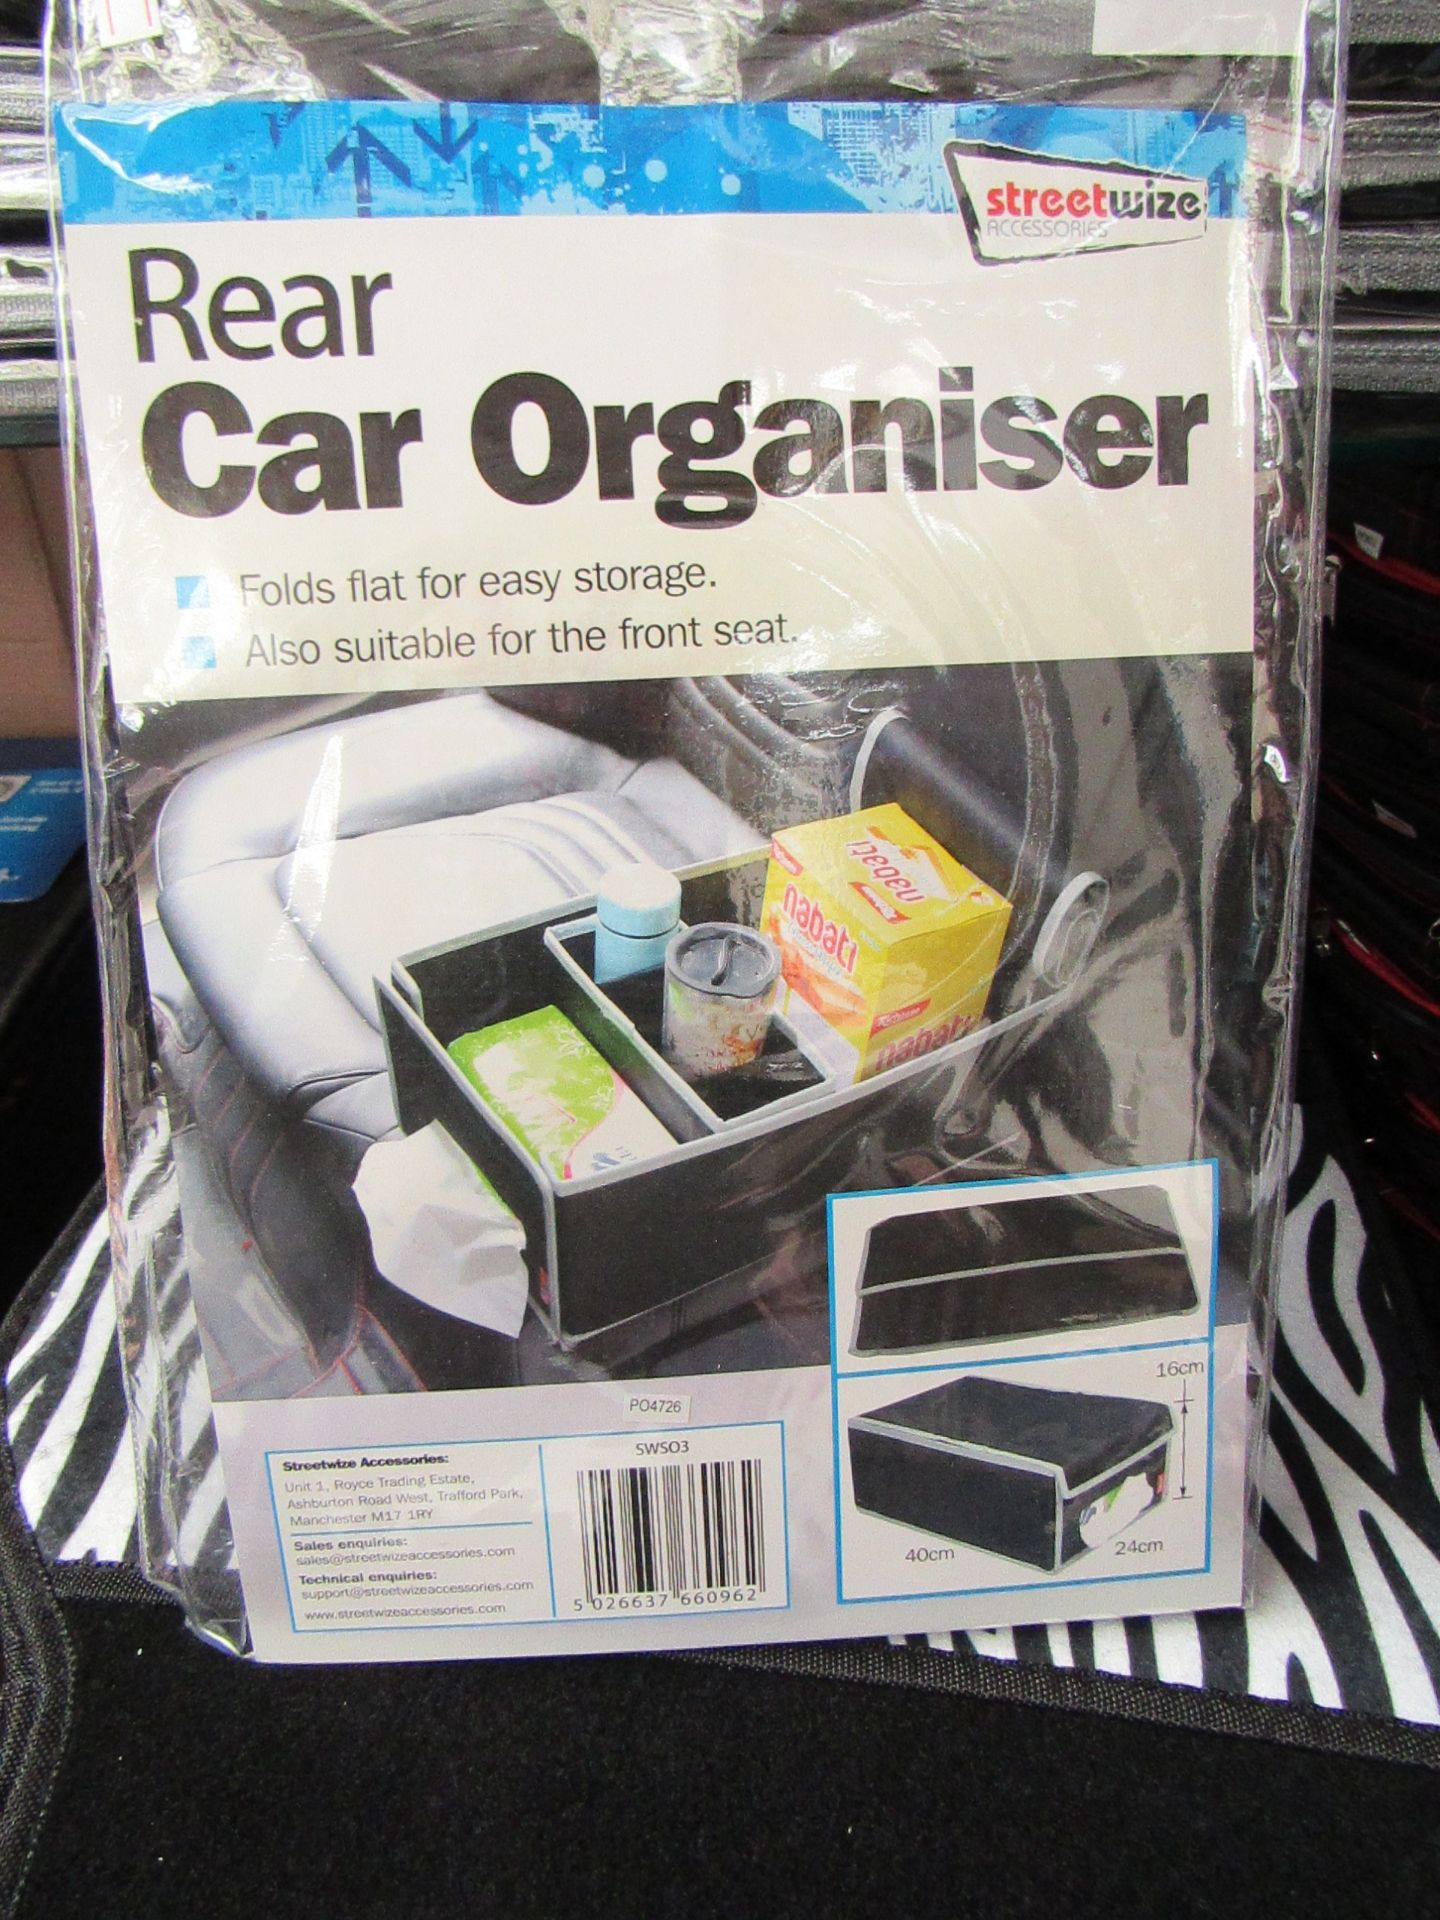 Lot 25 - 2 x Streetwize Car organisers, folds flat for easy storage, also suitable for front seat,new &